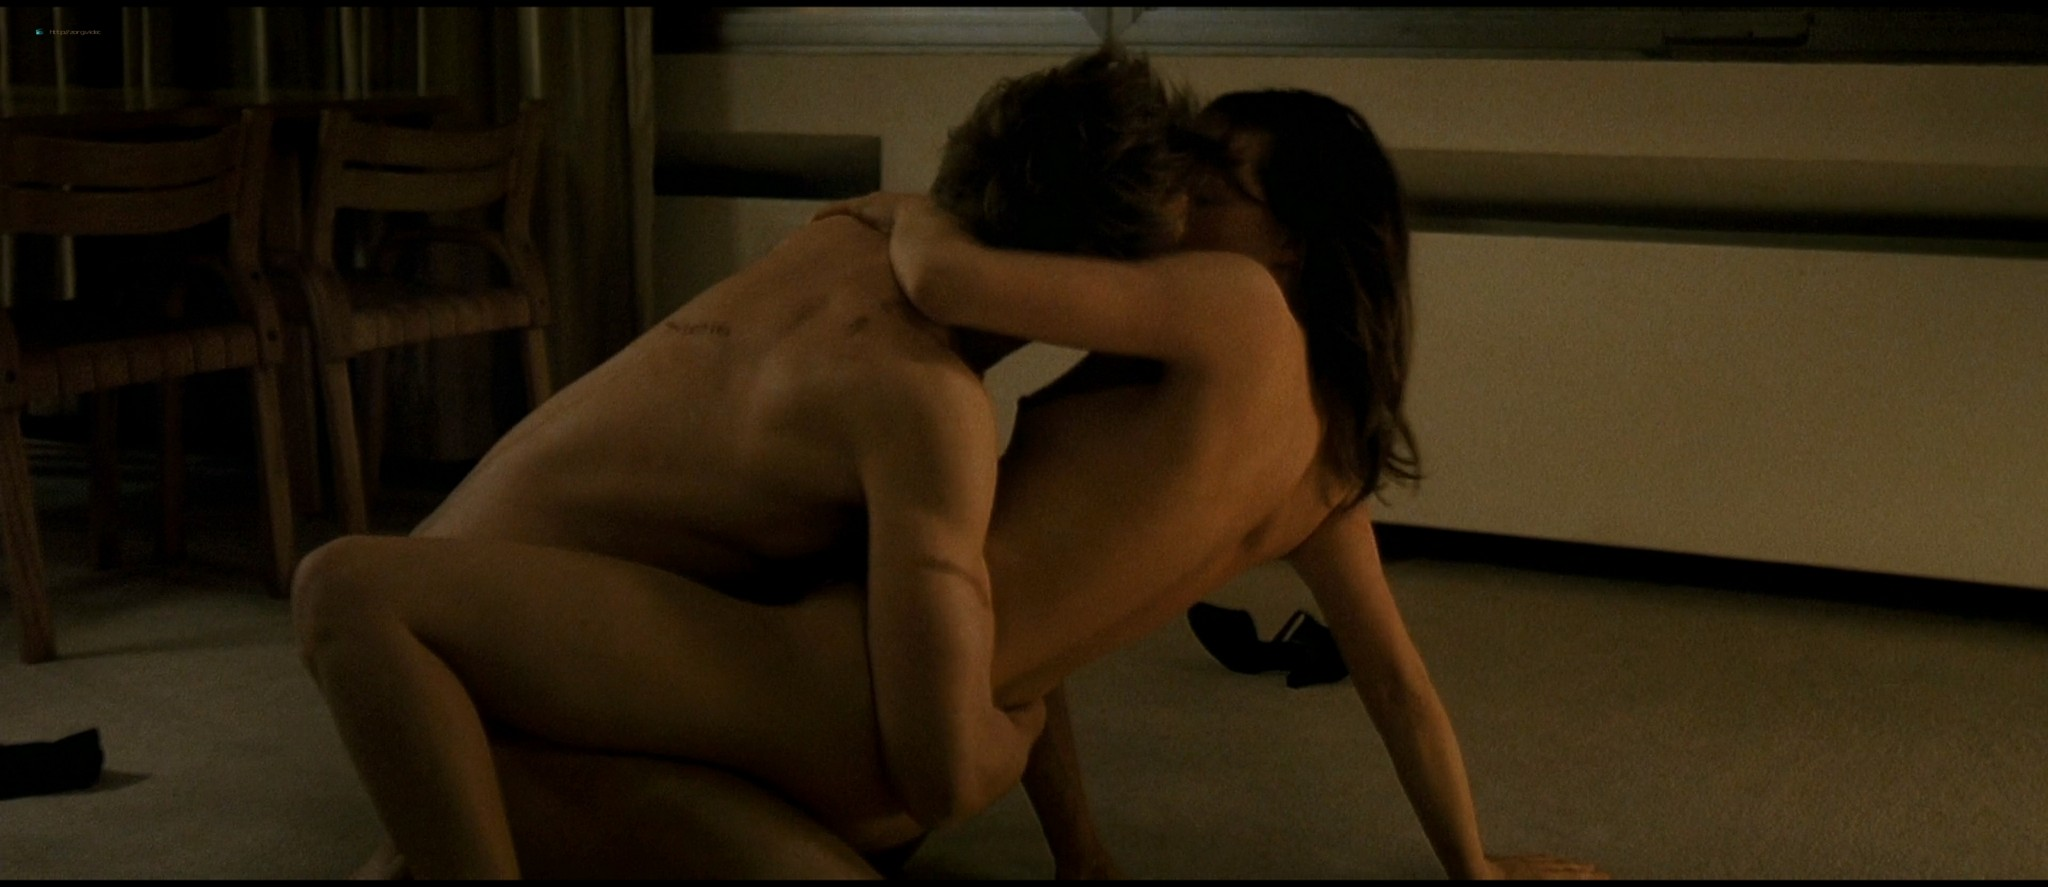 Eline Kuppens nude full frontal and sex - Linkeroever (BE-2008) HD 1080p BluRay (16)